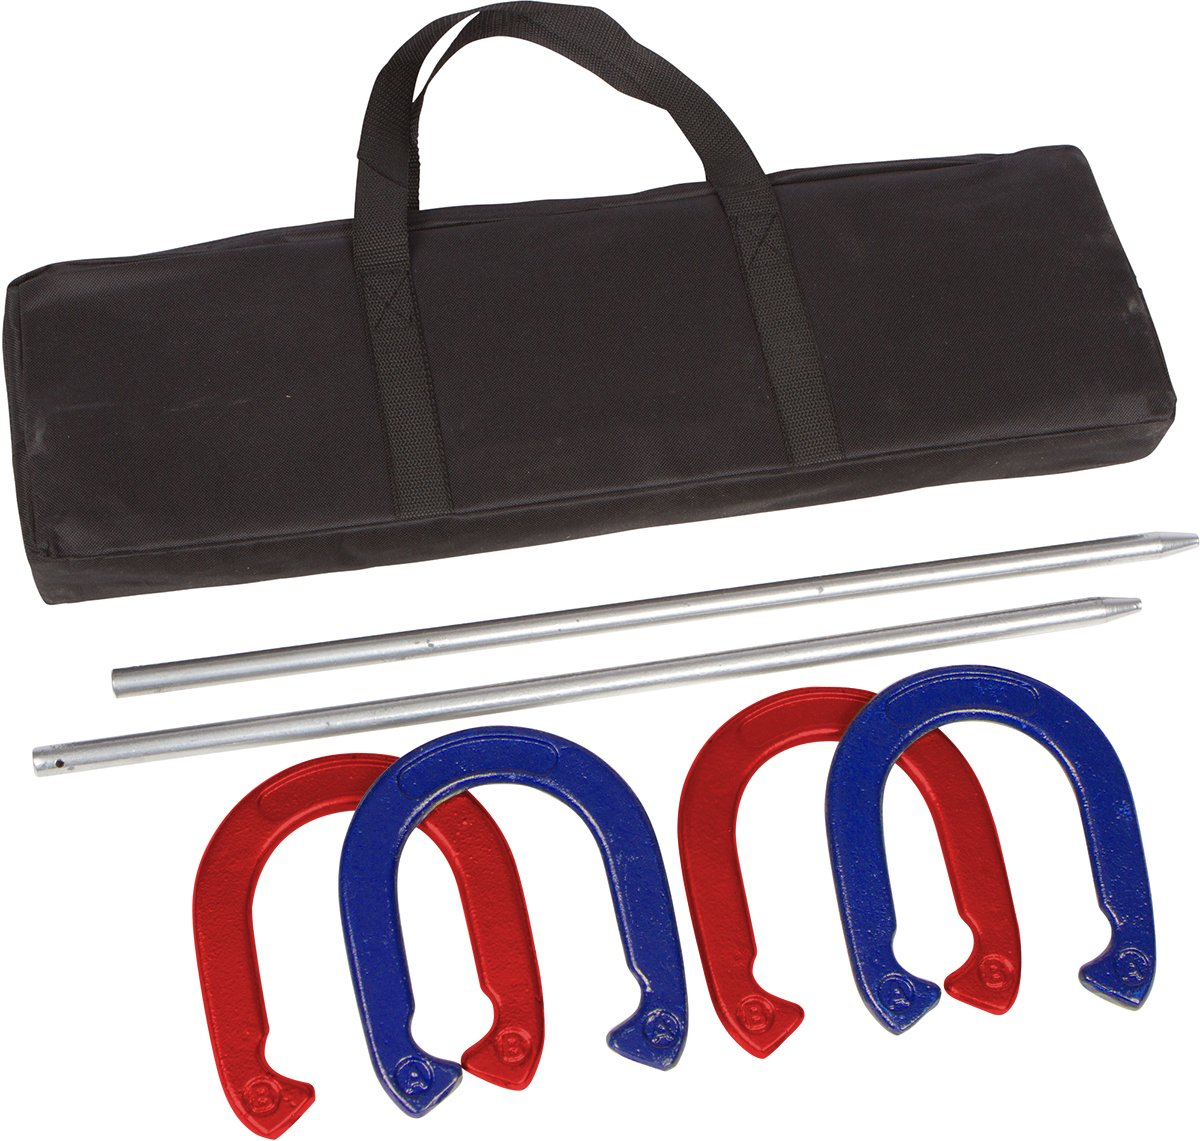 Trademark Innovations Pro Horseshoe Set - Powder Coated Steel (Red and Blue) by Trademark Innovations